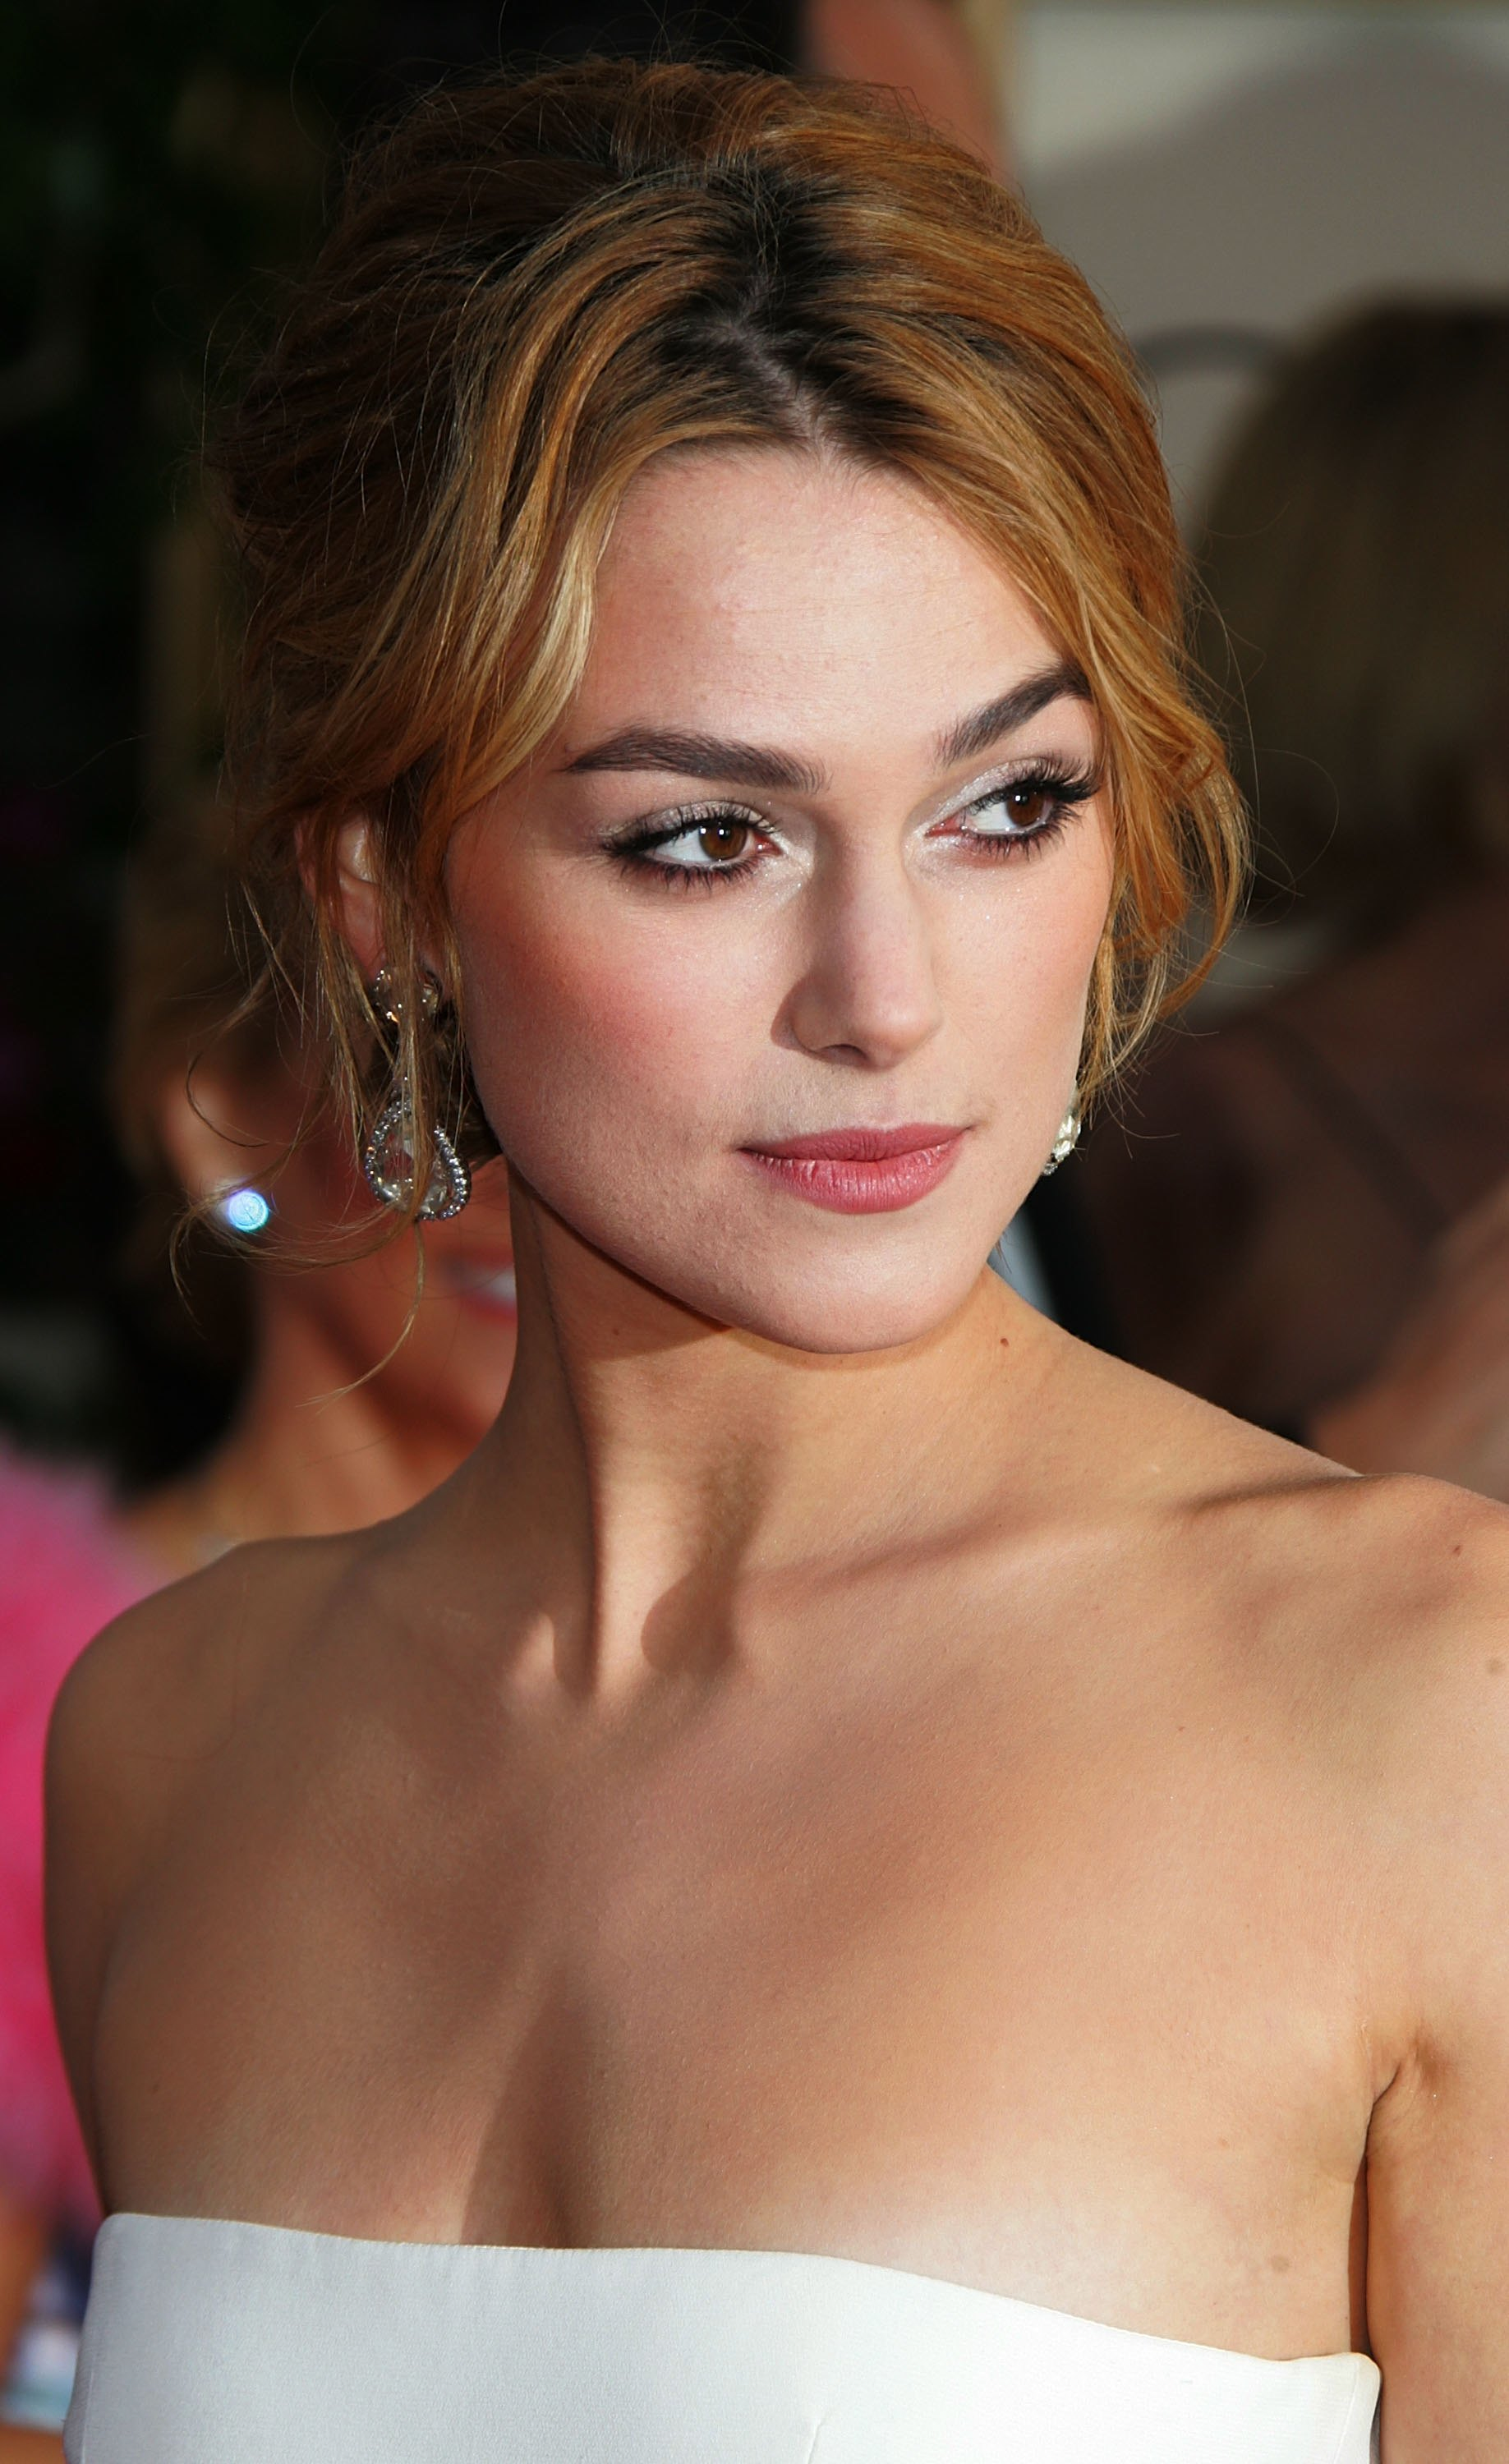 Keira Knightley Celebrity HD Wallpaper